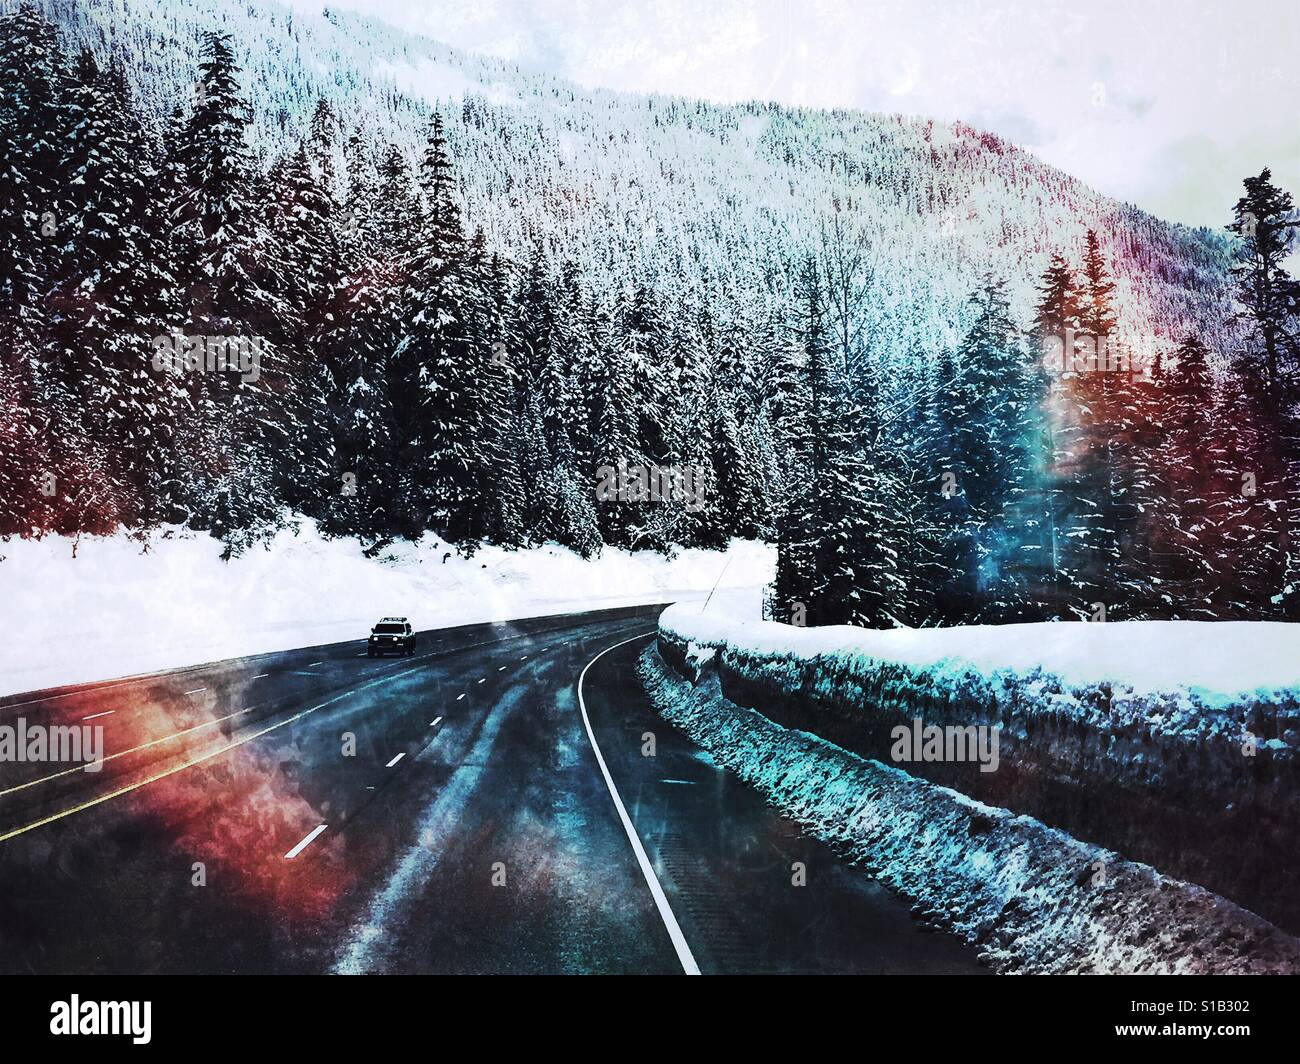 Winter driving conditions on Stevens Pass, WA - Stock Image